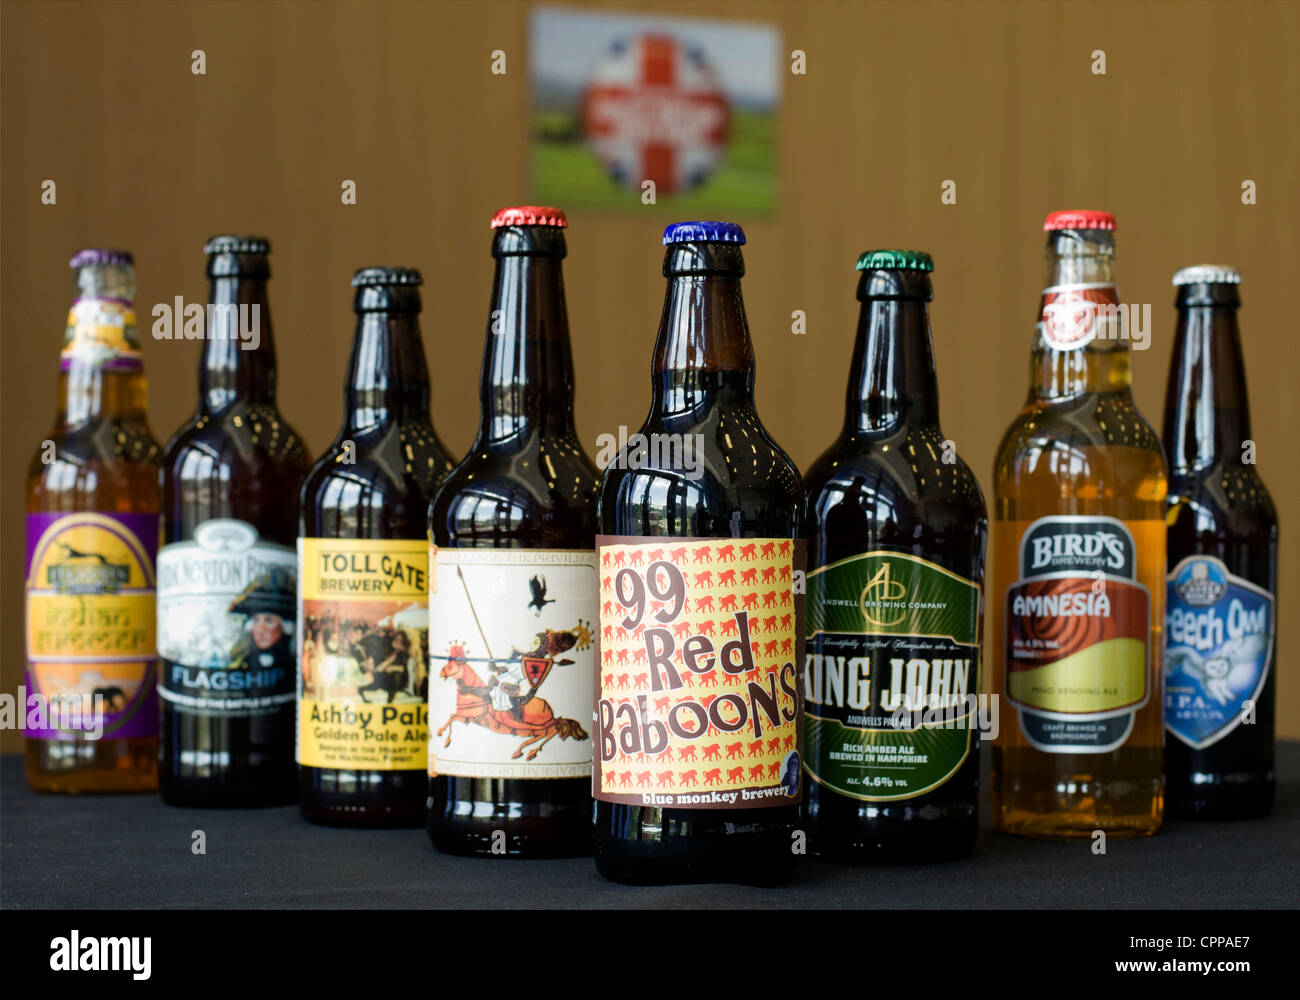 Bottles of Real Ale beer brewed in England. The breweries that make them give them distinctive names and colorful - Stock Image